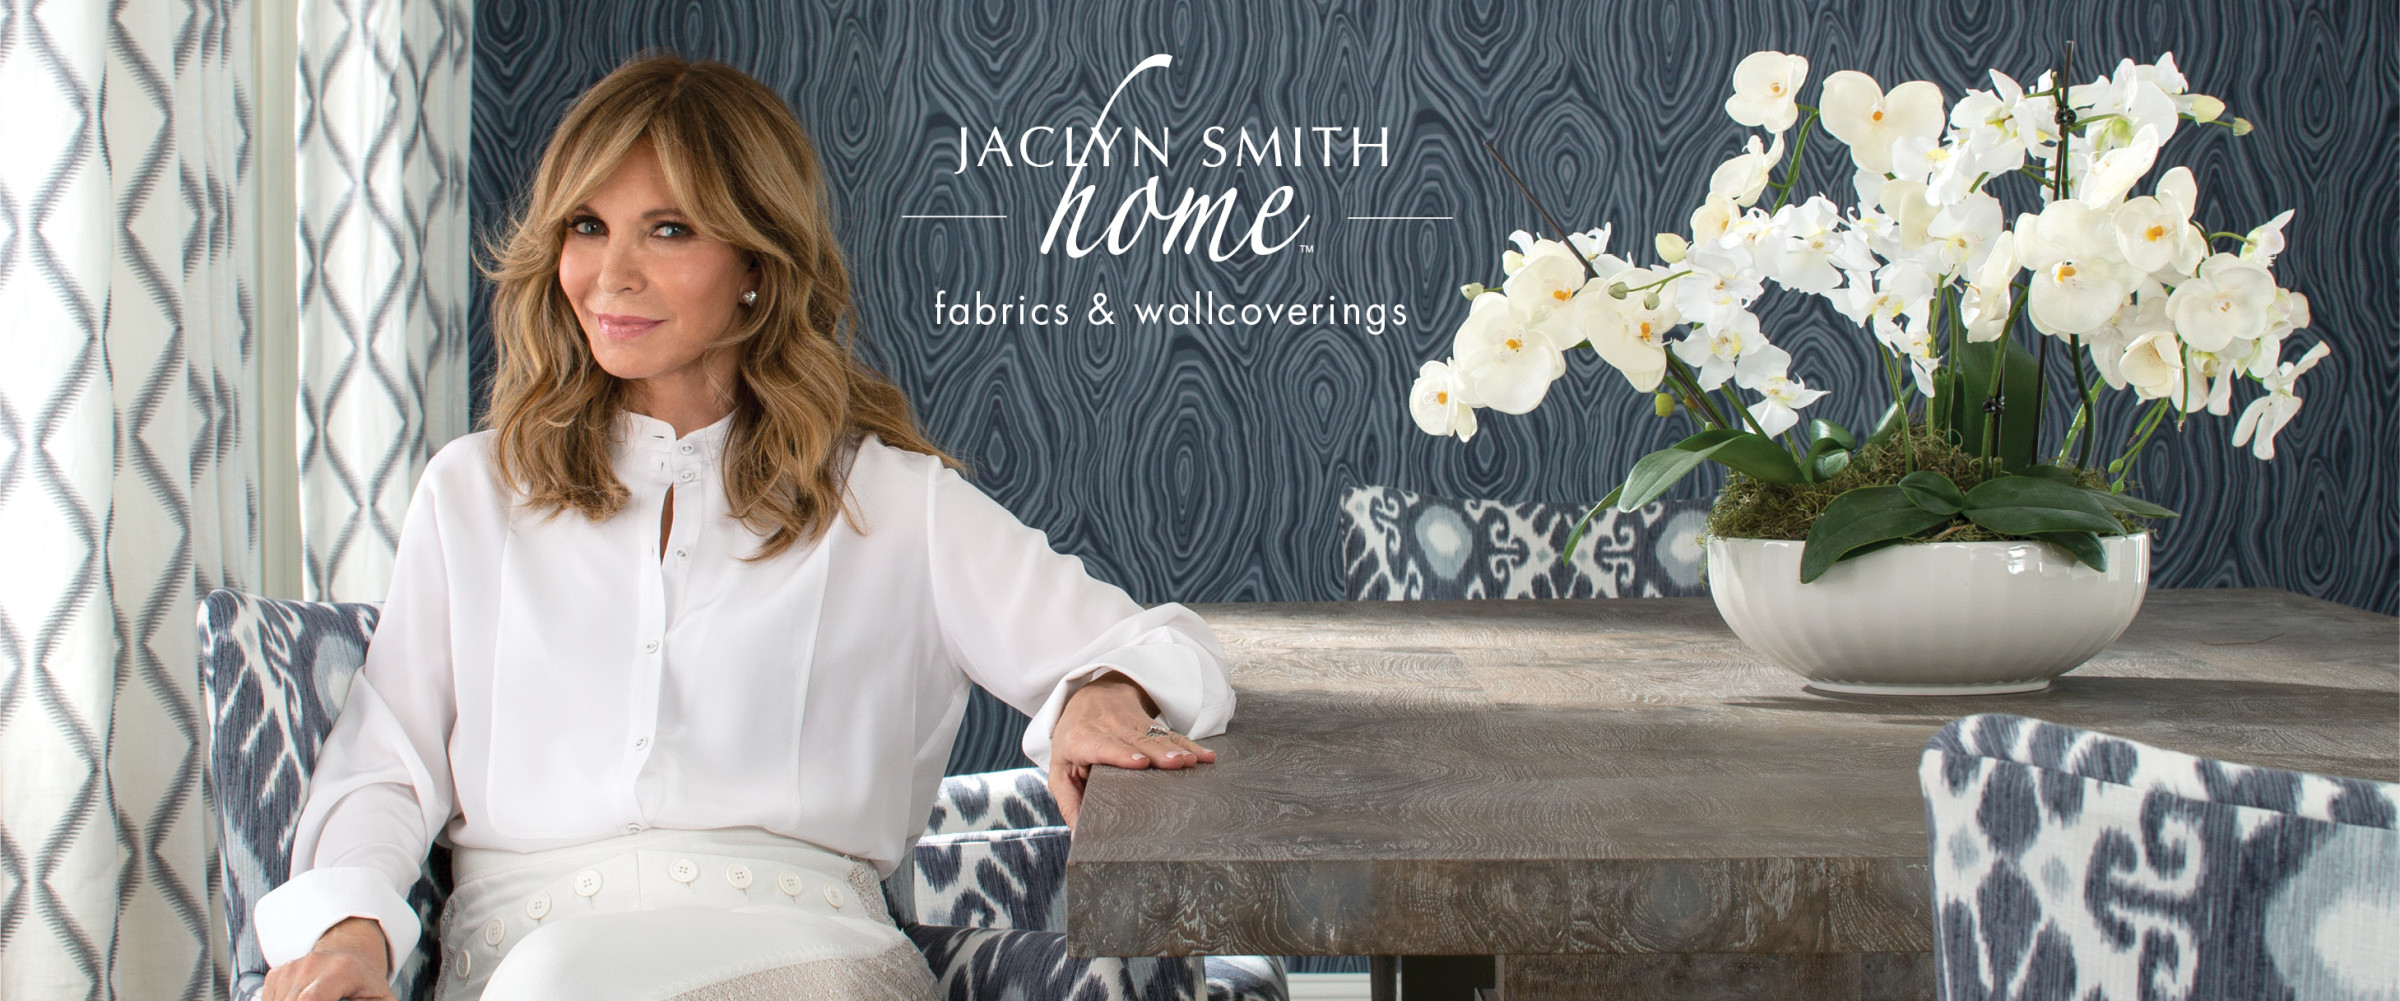 Jaclyn Smith Home Fabrics & Wallcoverings